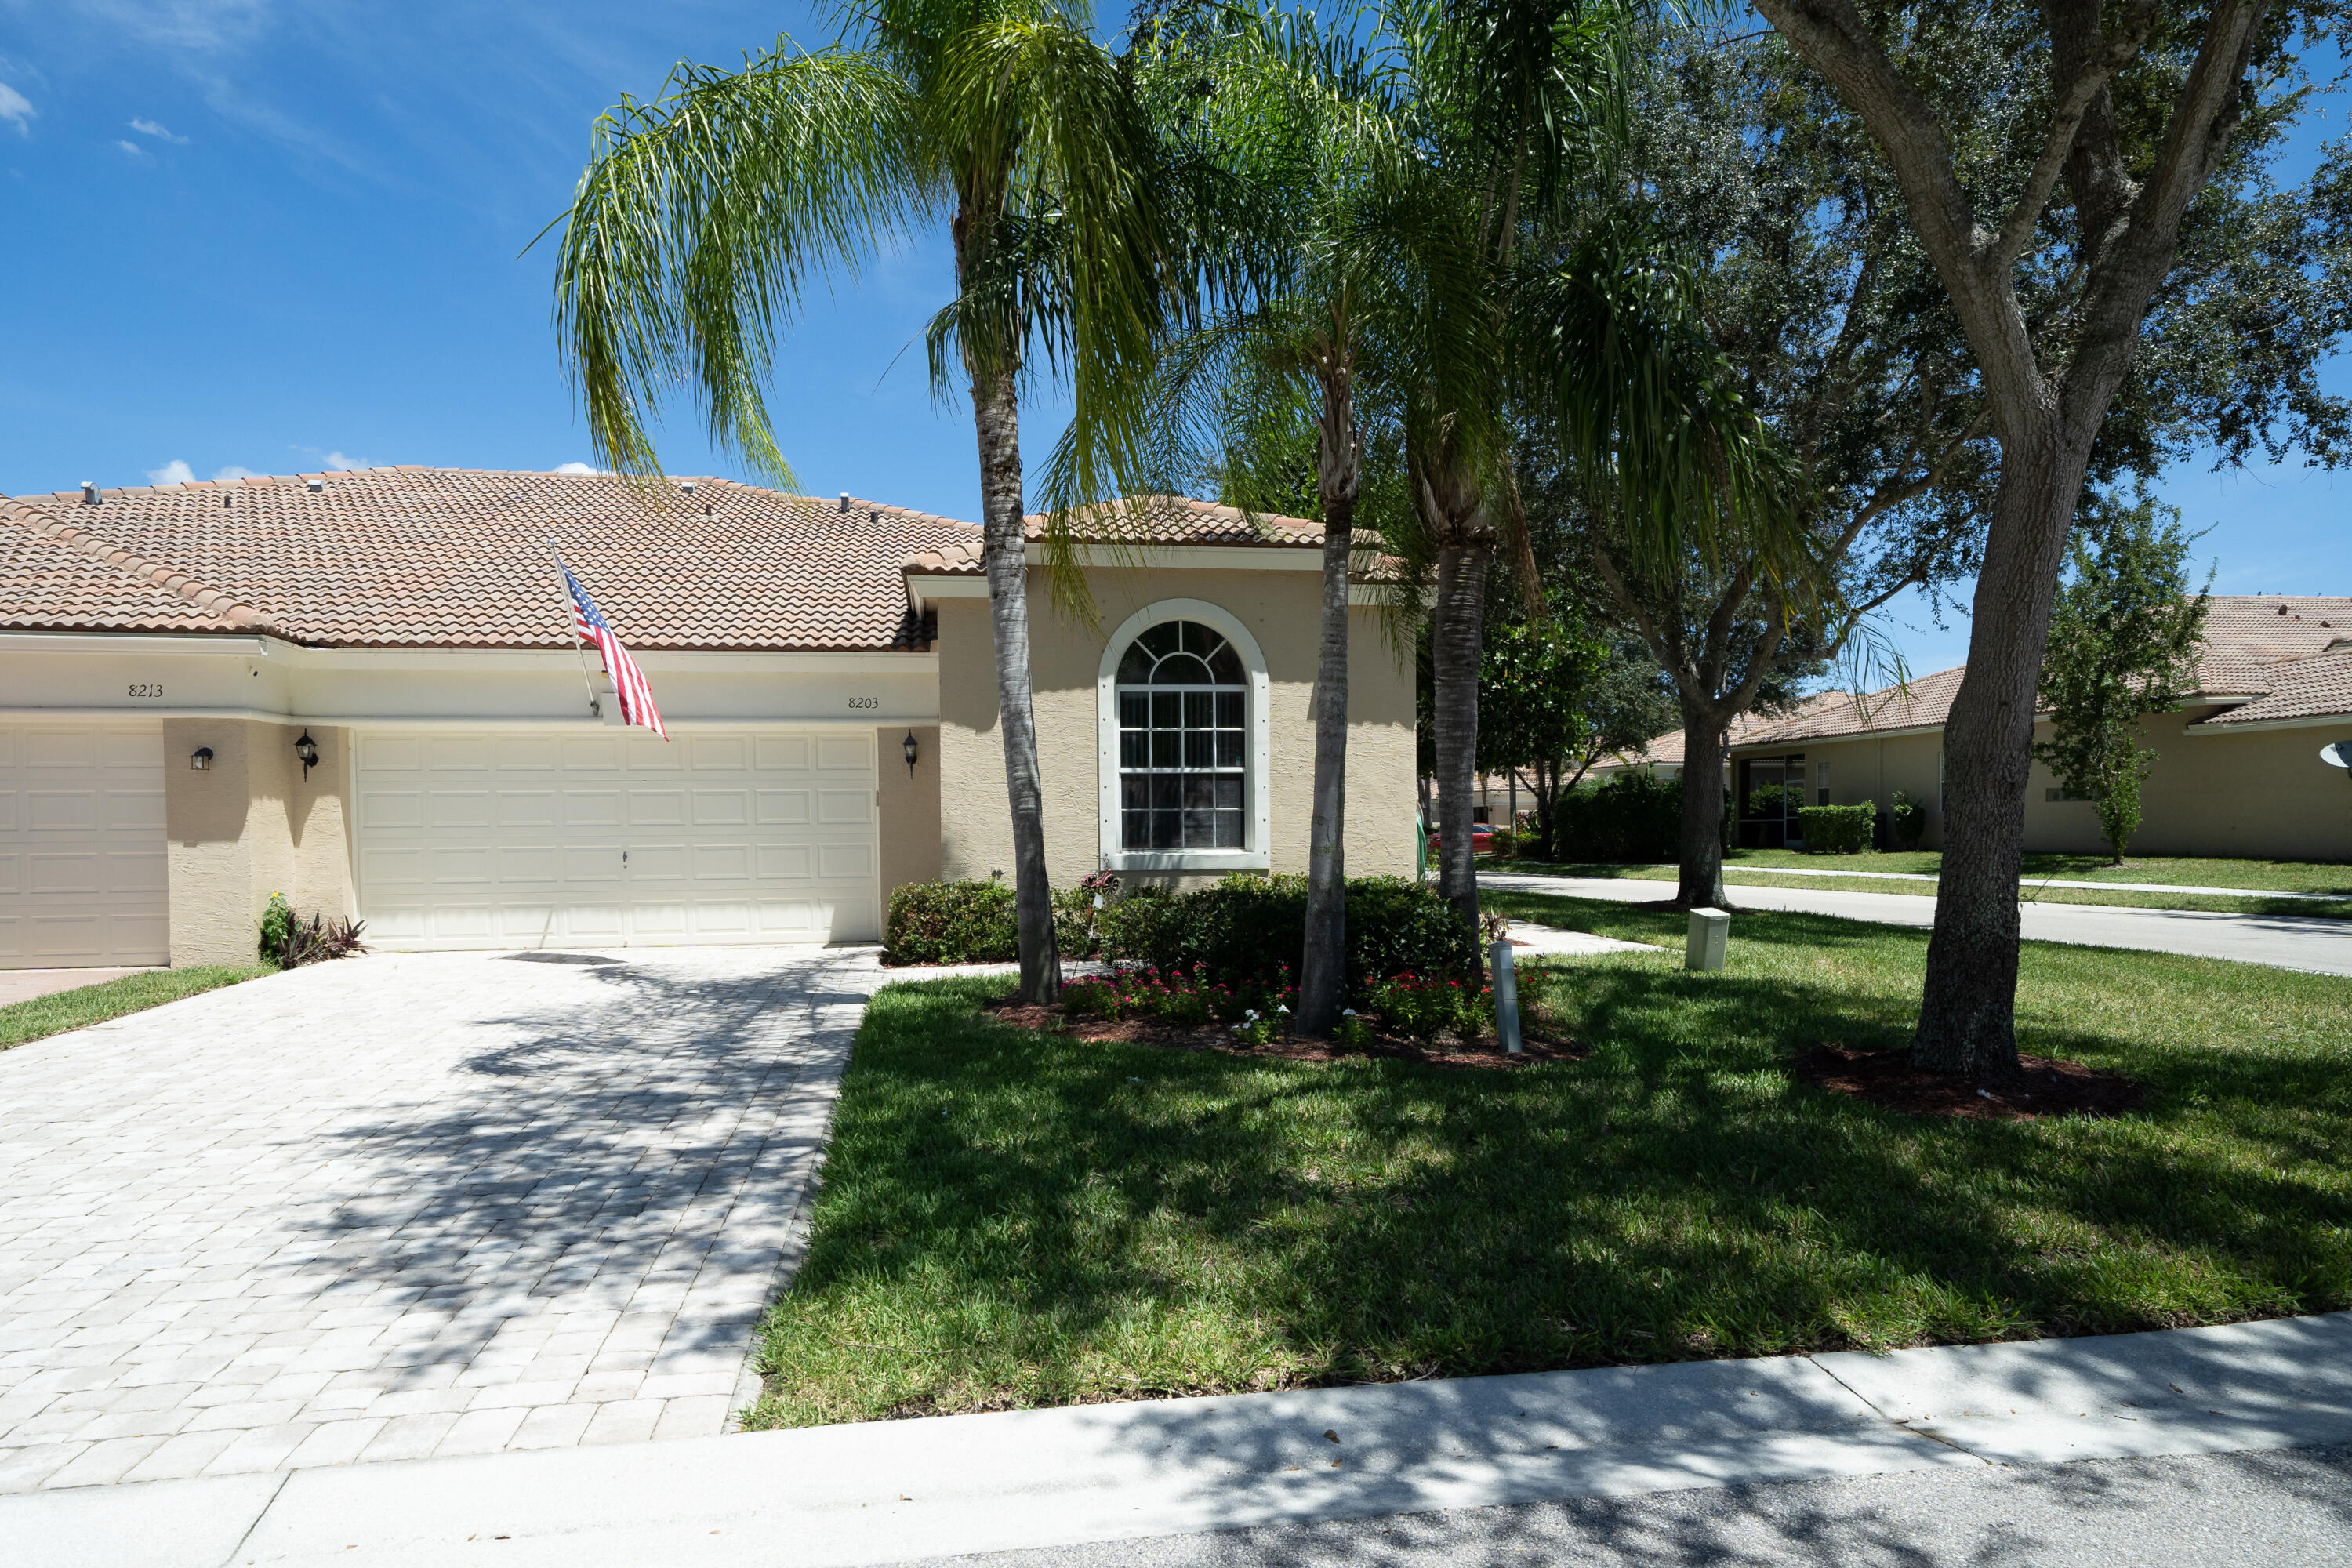 8203  Manjack Cay  8203 For Sale 10740989, FL